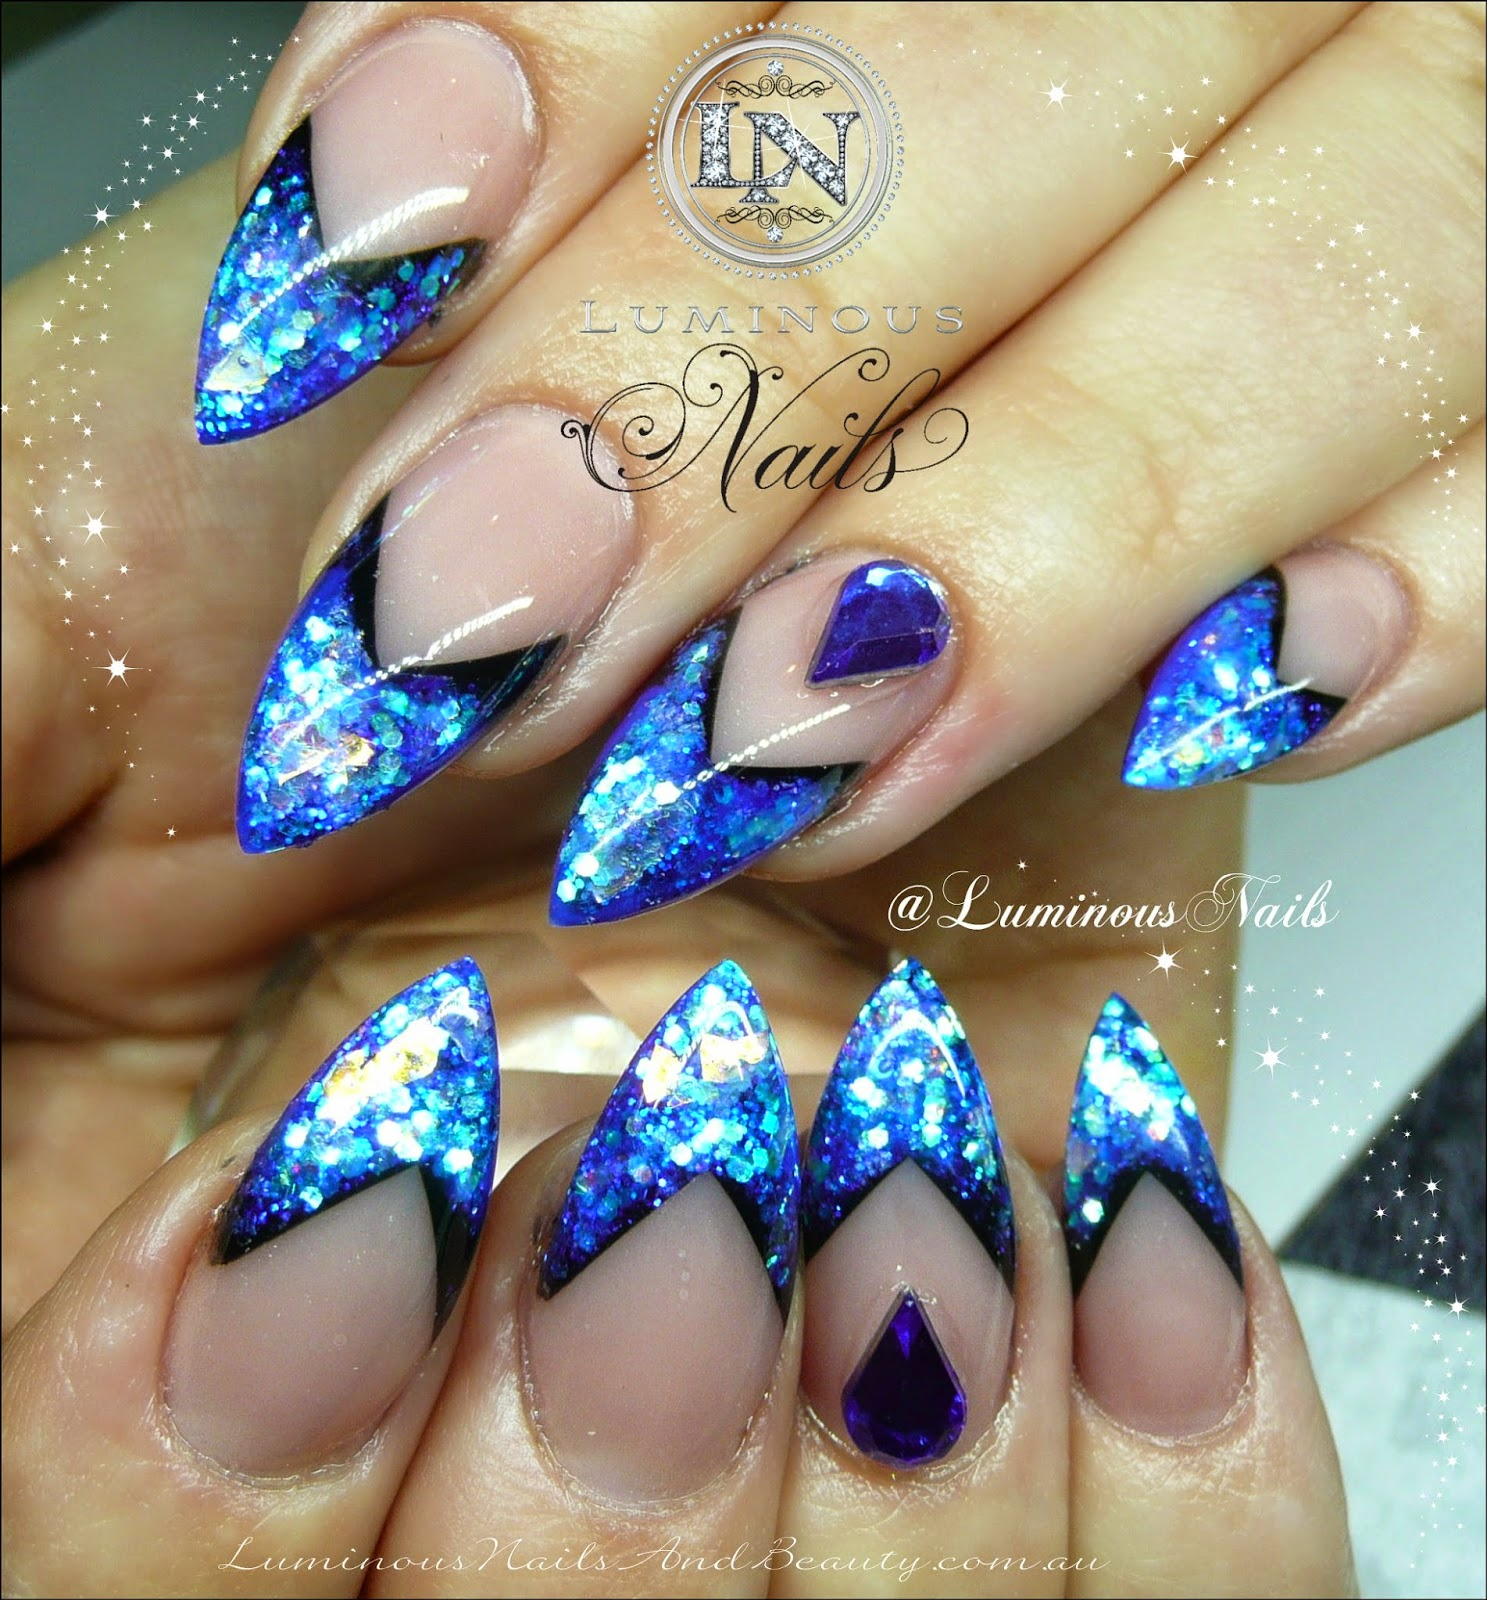 Royal Blue Nails Can You Say Glitter Pinterest Nail Art Design